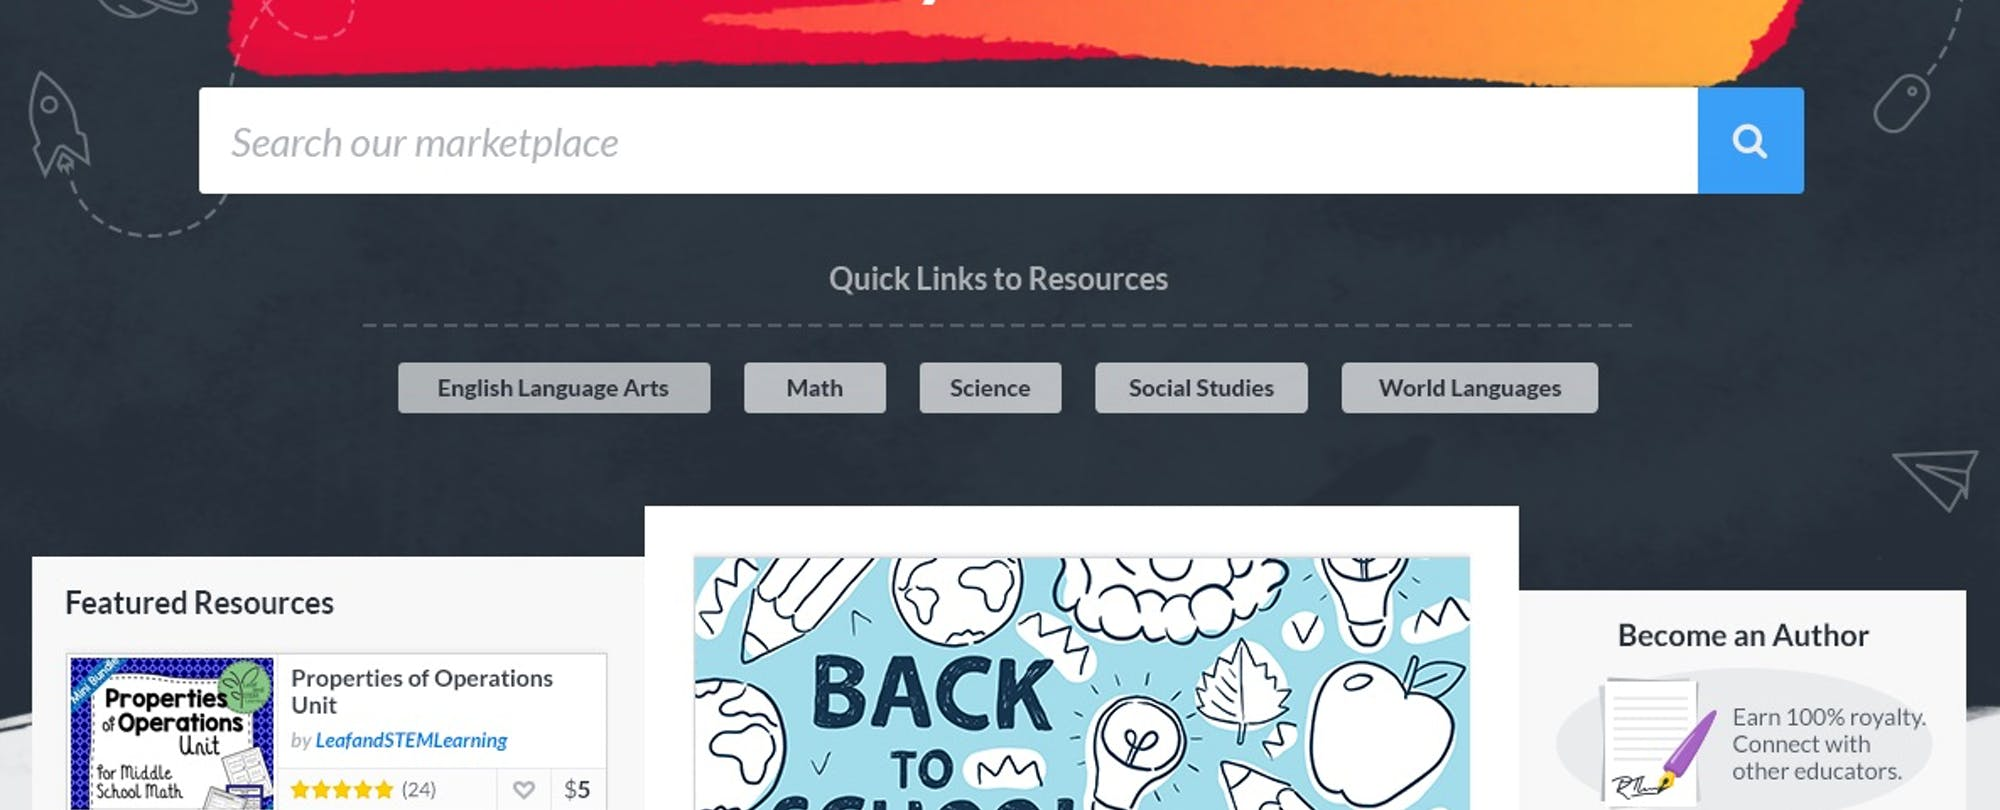 TES Online Marketplace for Teacher Materials Opens